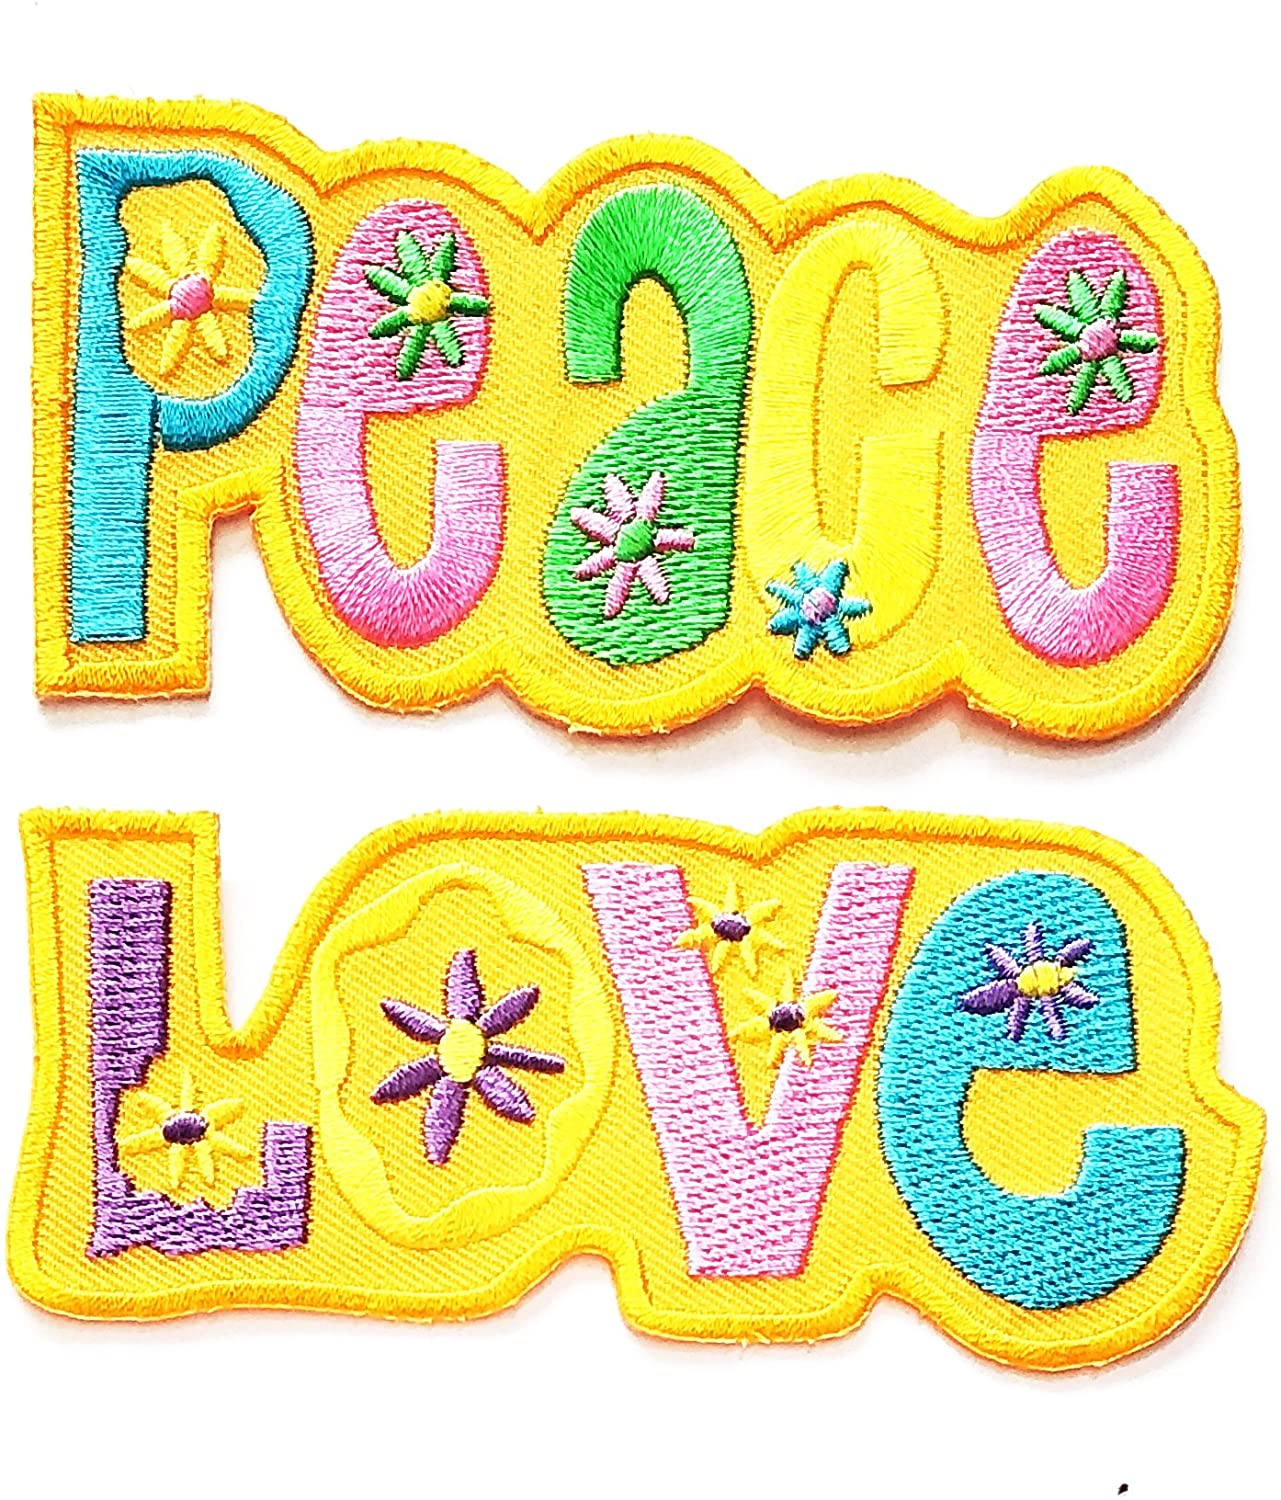 Nipitshop Patches Set 2 Pcs Application Peace Sign Sun Flowers Yellow Love, Peace Sign Hippie Boho Retro Flower Power Summer of Love Hippy Applique Iron-on Patch